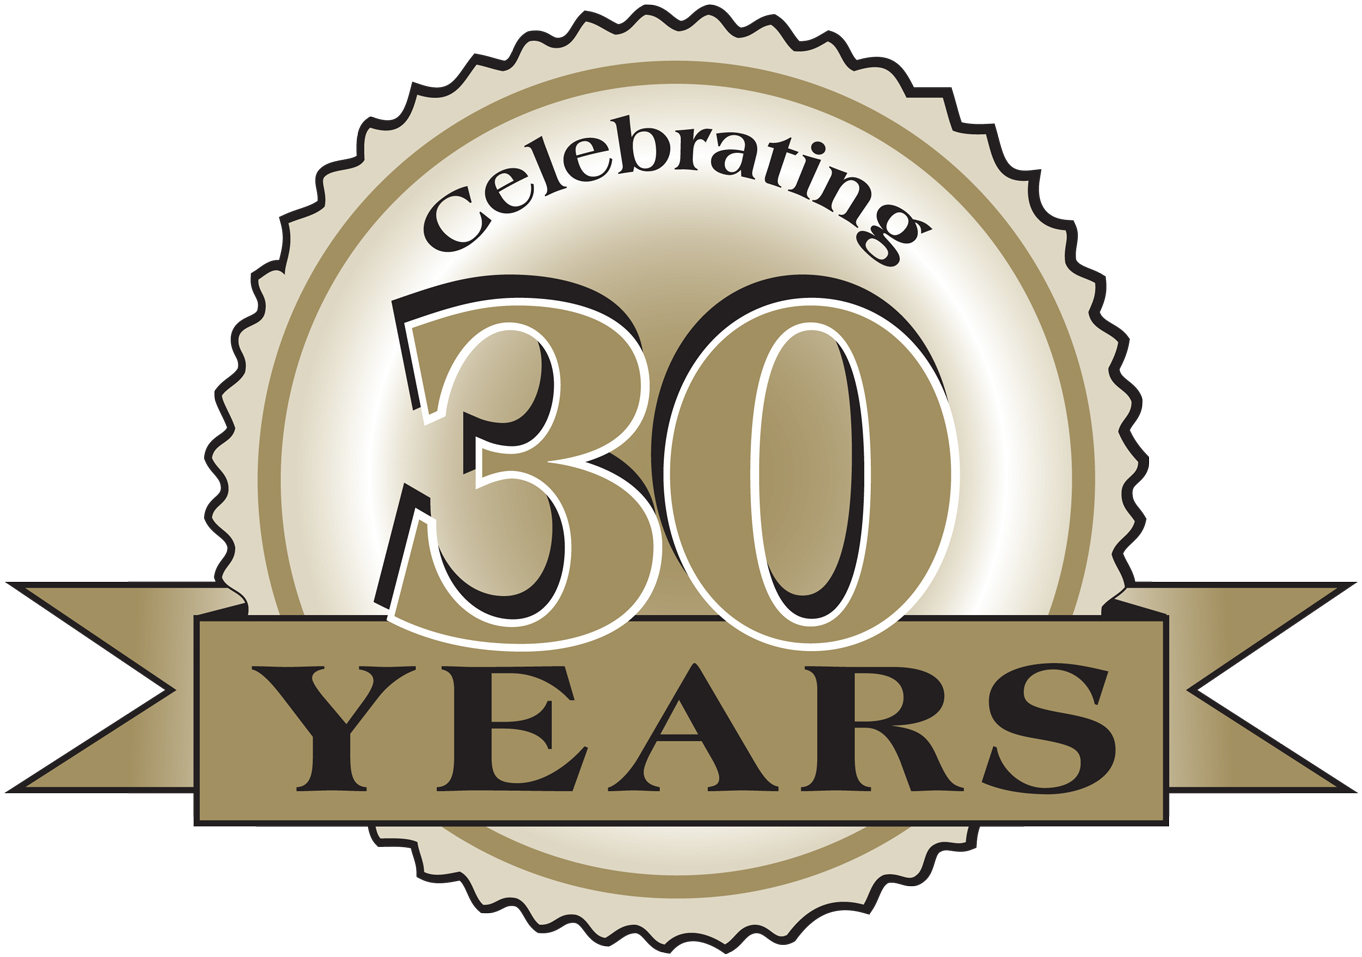 Serving Central FL for over 30 years. Thank you!